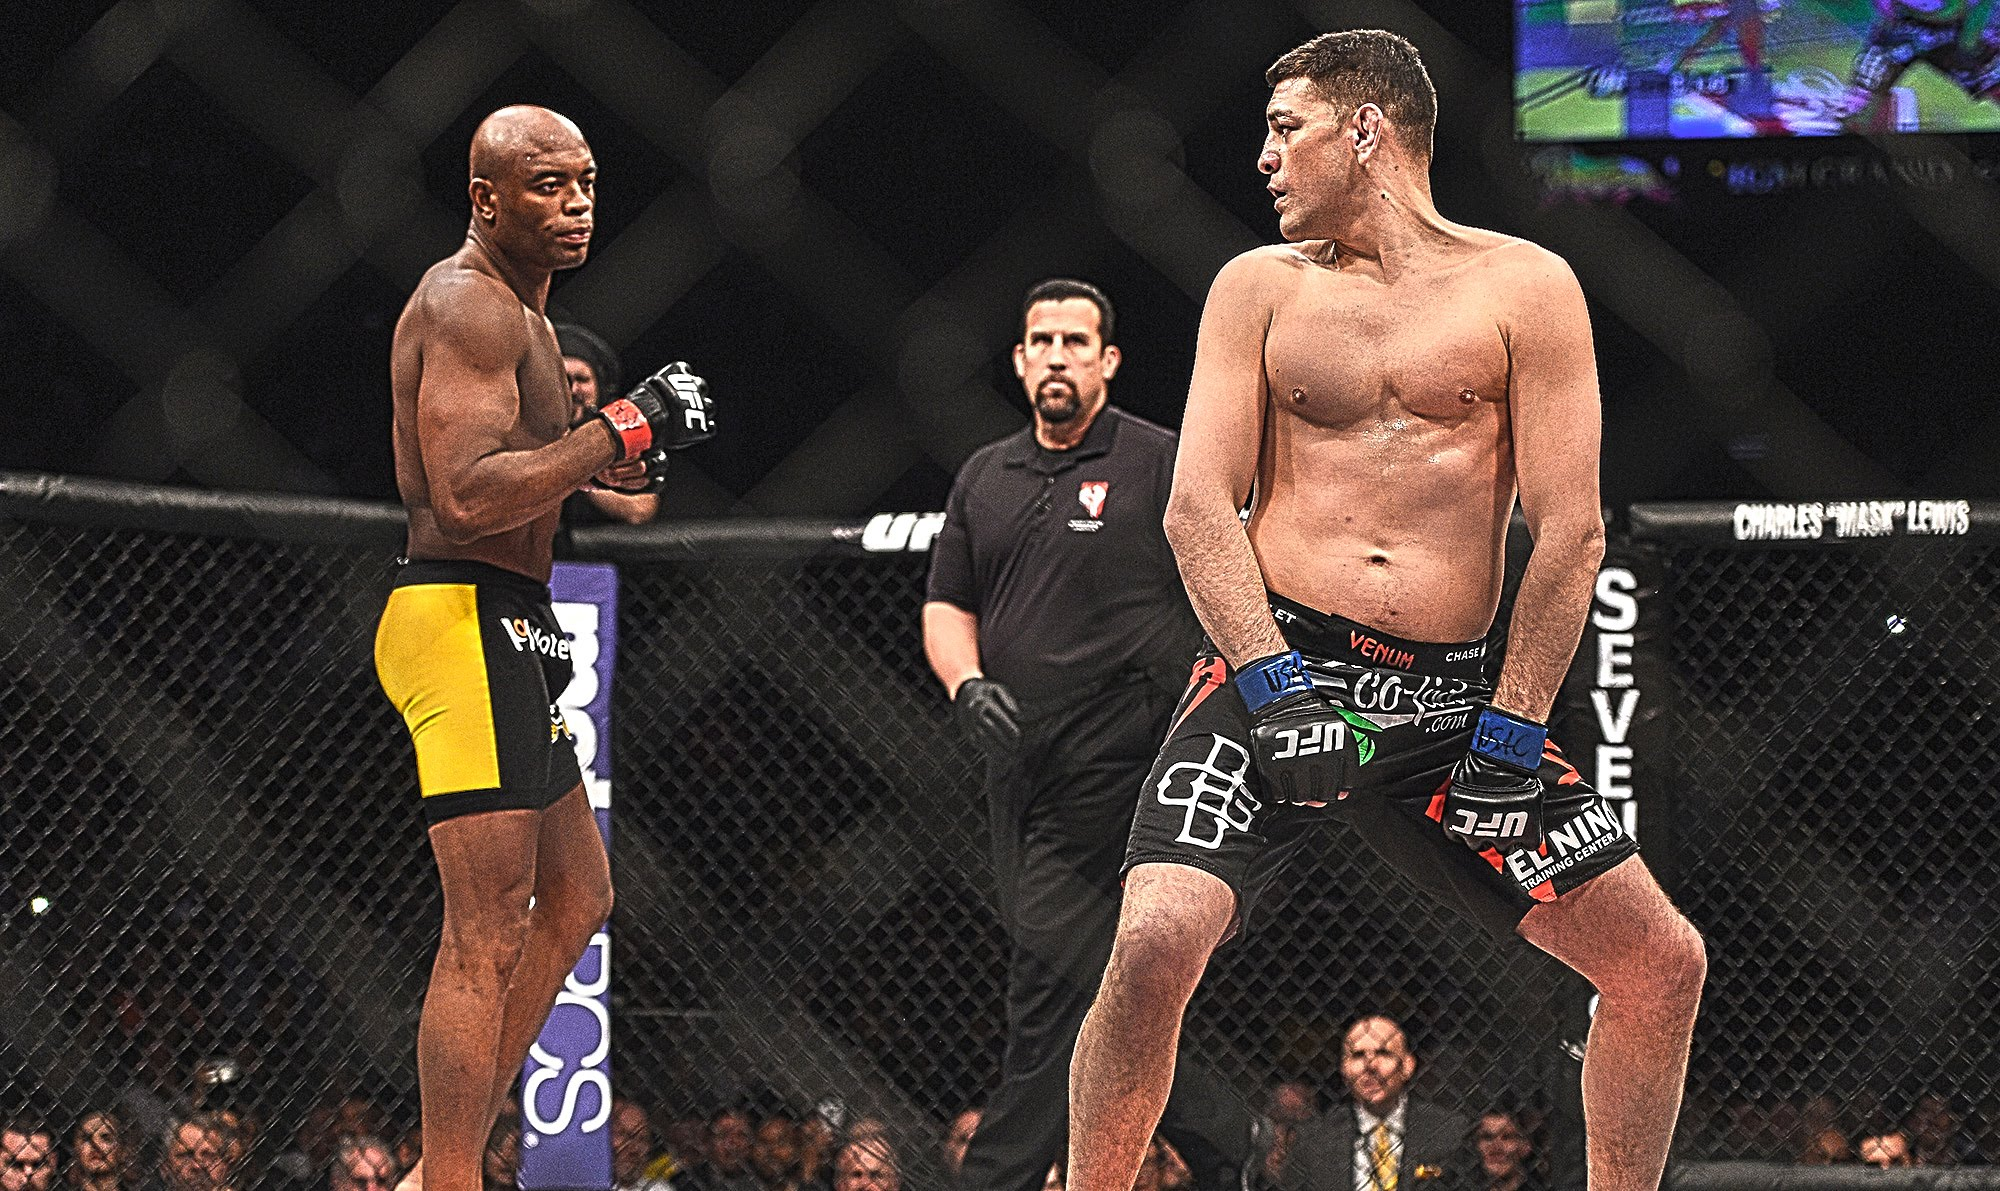 """Nick Diaz throws cold water over potential UFC comeback against Anderson Silva: """"I just want to party!"""" - Nick Diaz"""